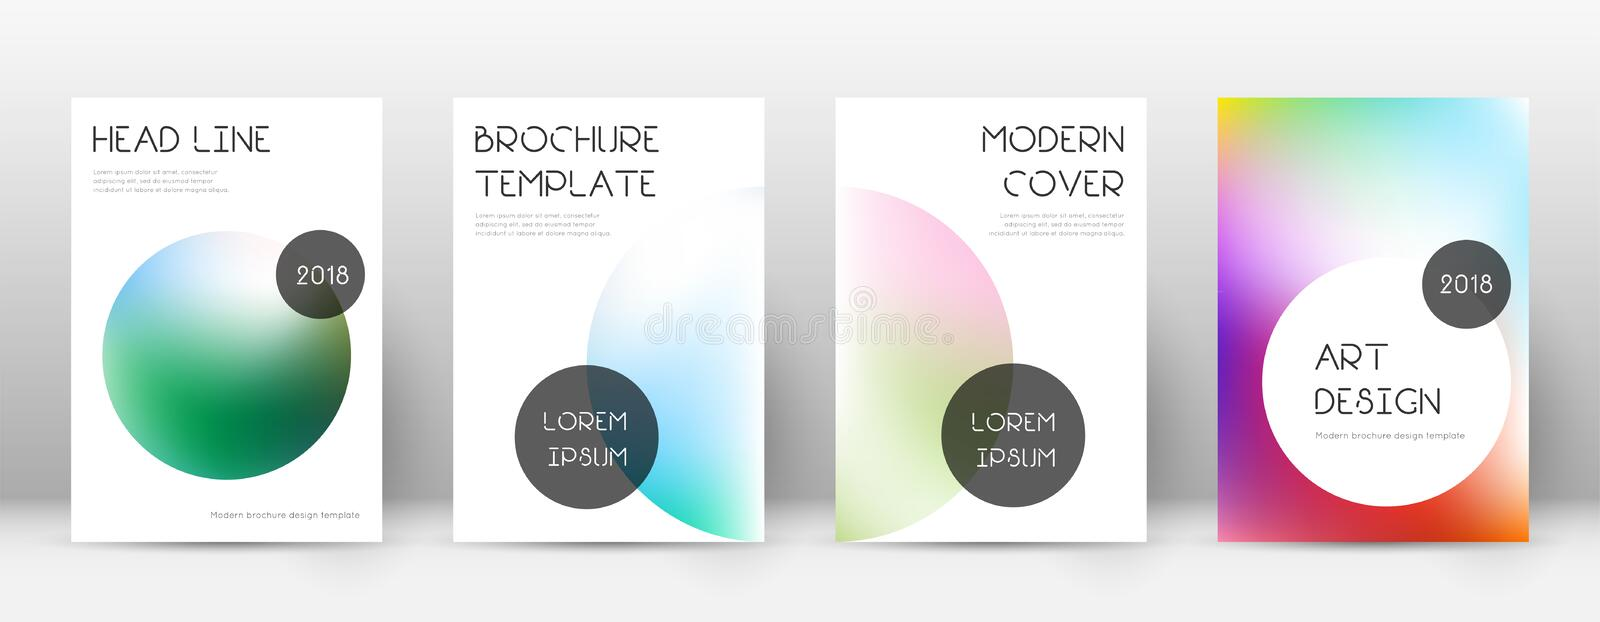 Flyer layout. Trendy artistic template for Brochure, Annual Report, Magazine, Poster, Corporate Presentation, Portfolio, Flyer. Beauteous bright cover page vector illustration